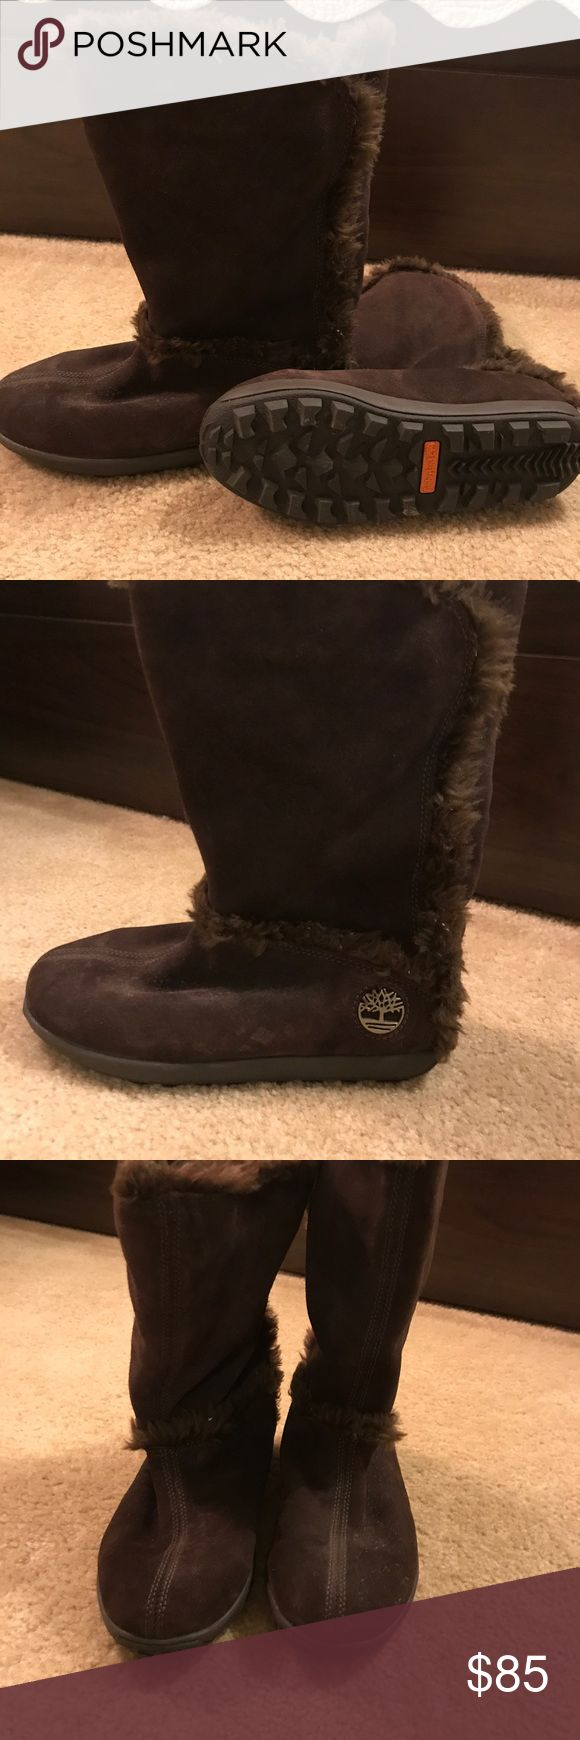 Timberland snow boots Brown with furry lining. Never worn. Timberland Shoes Winter & Rain Boots